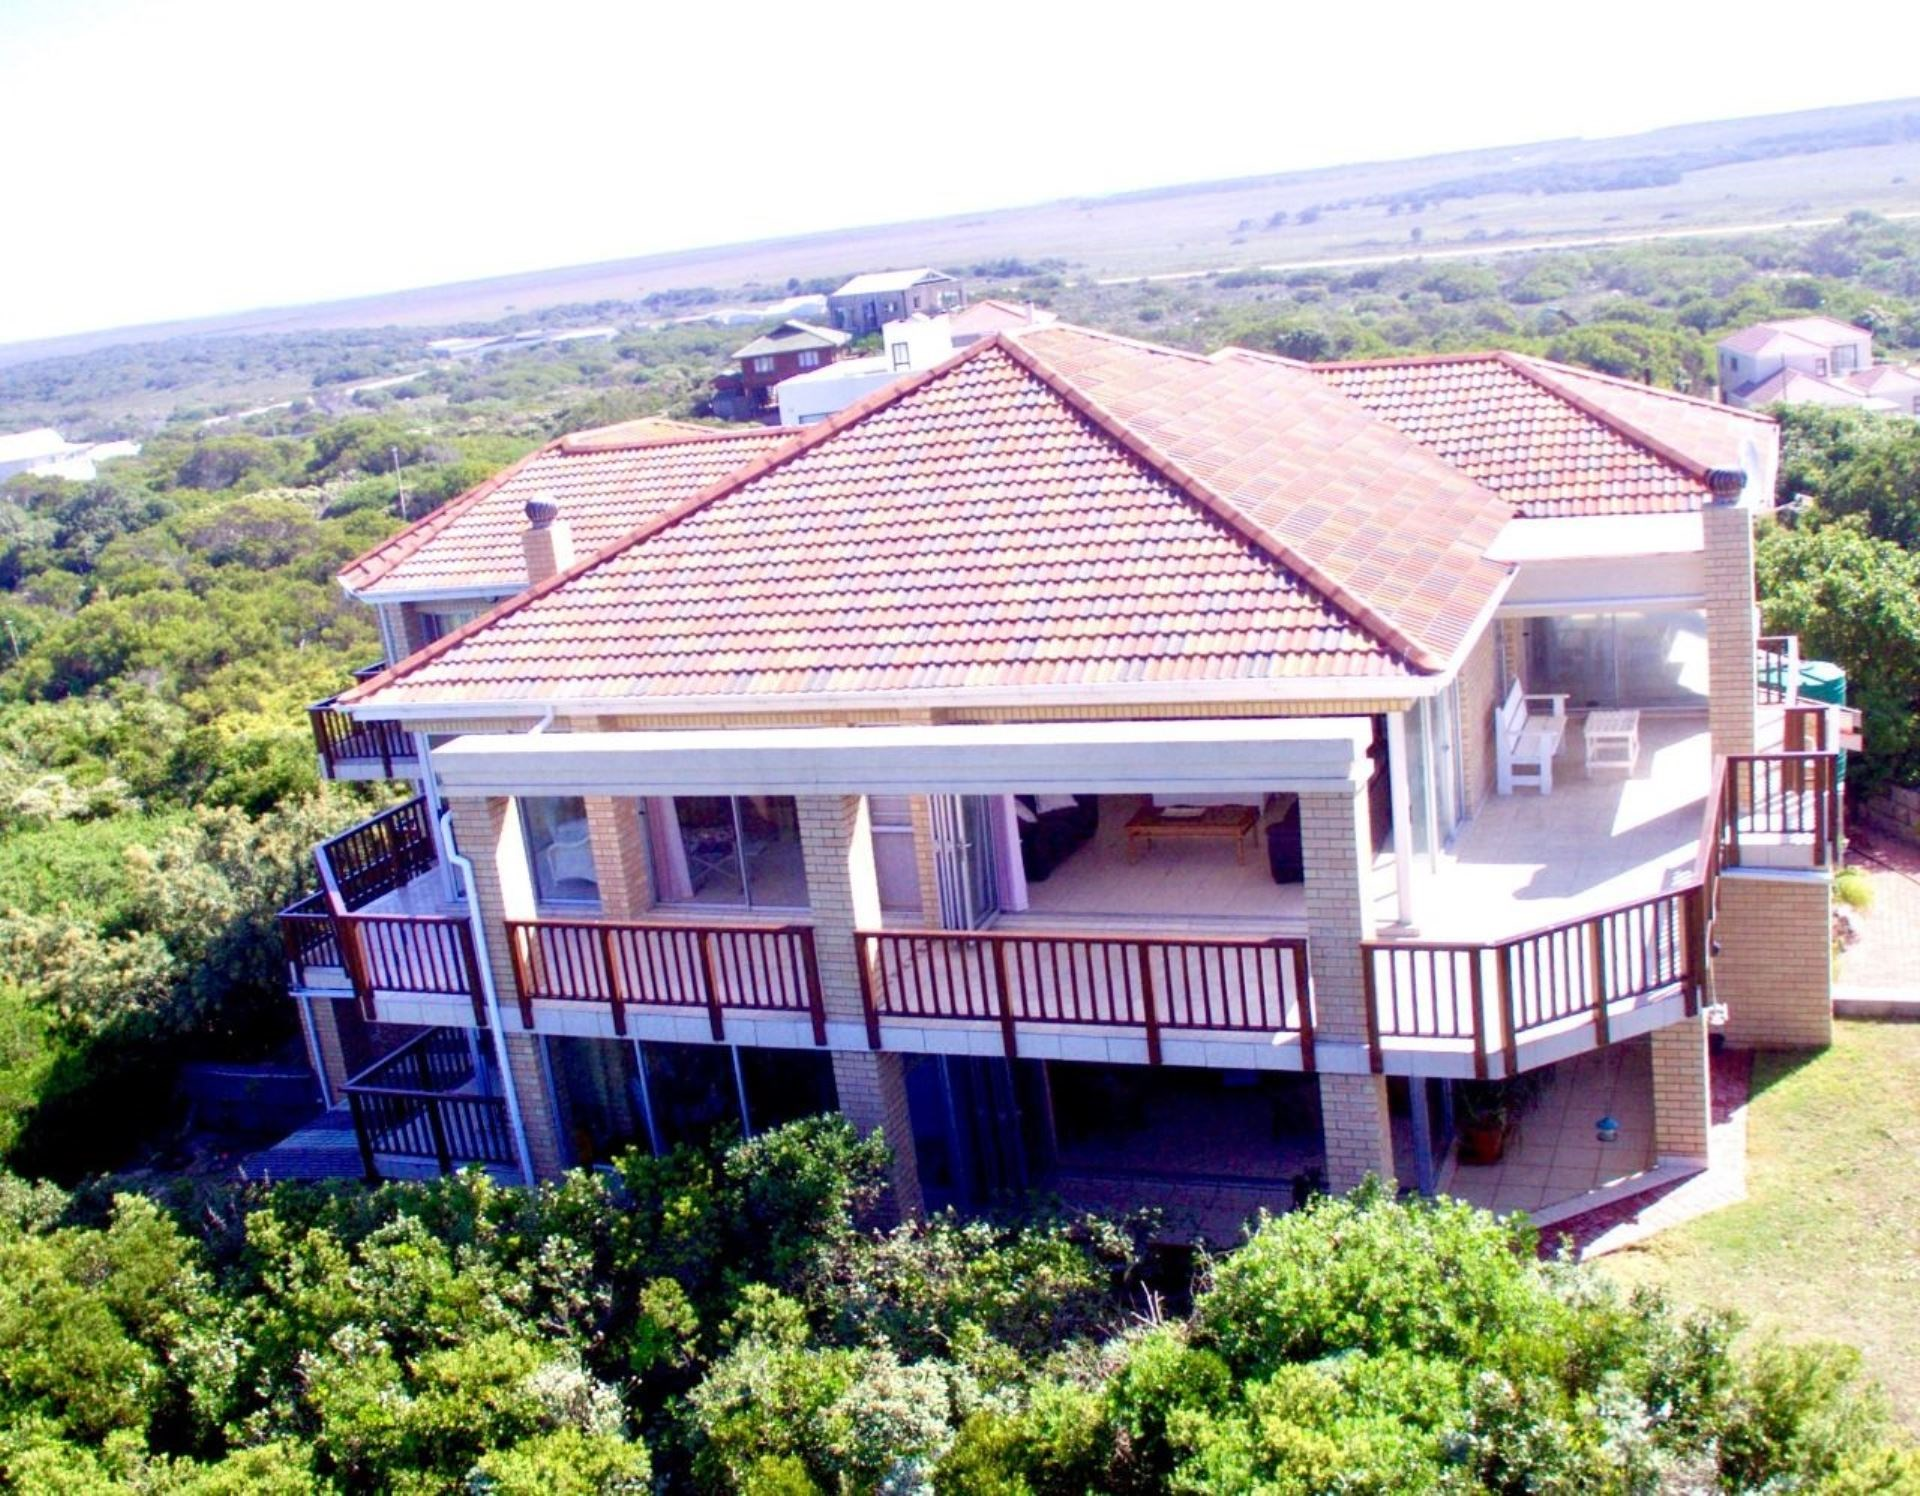 6 Bedroom House for Sale in Paradise Beach